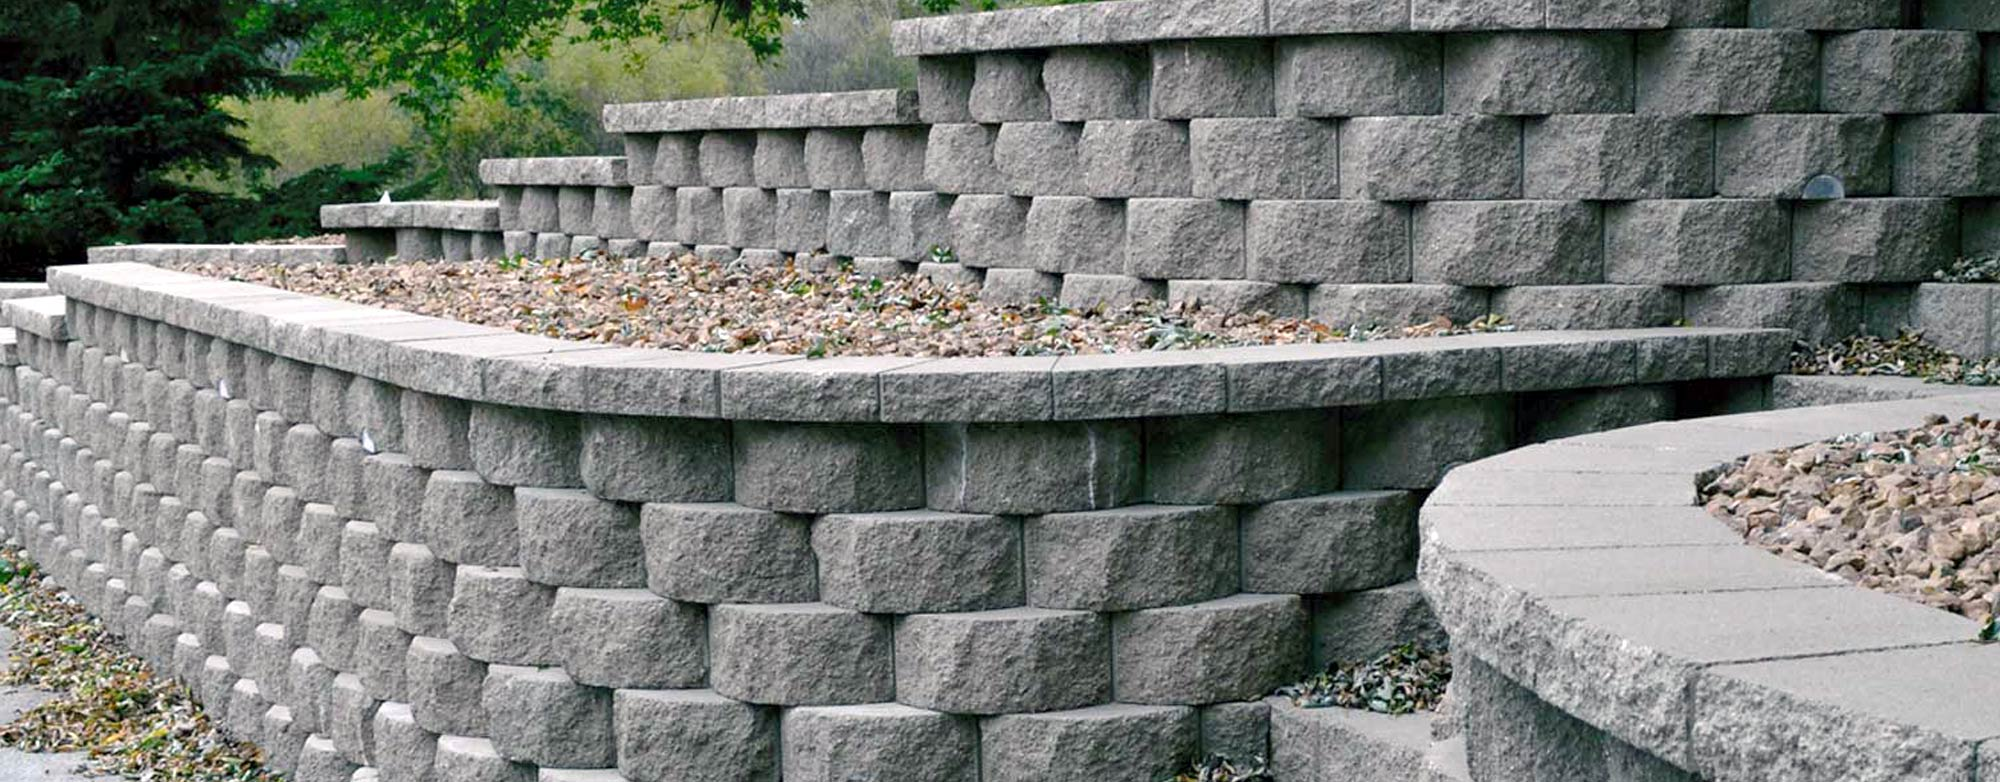 Retaining wall using LondoneStone products